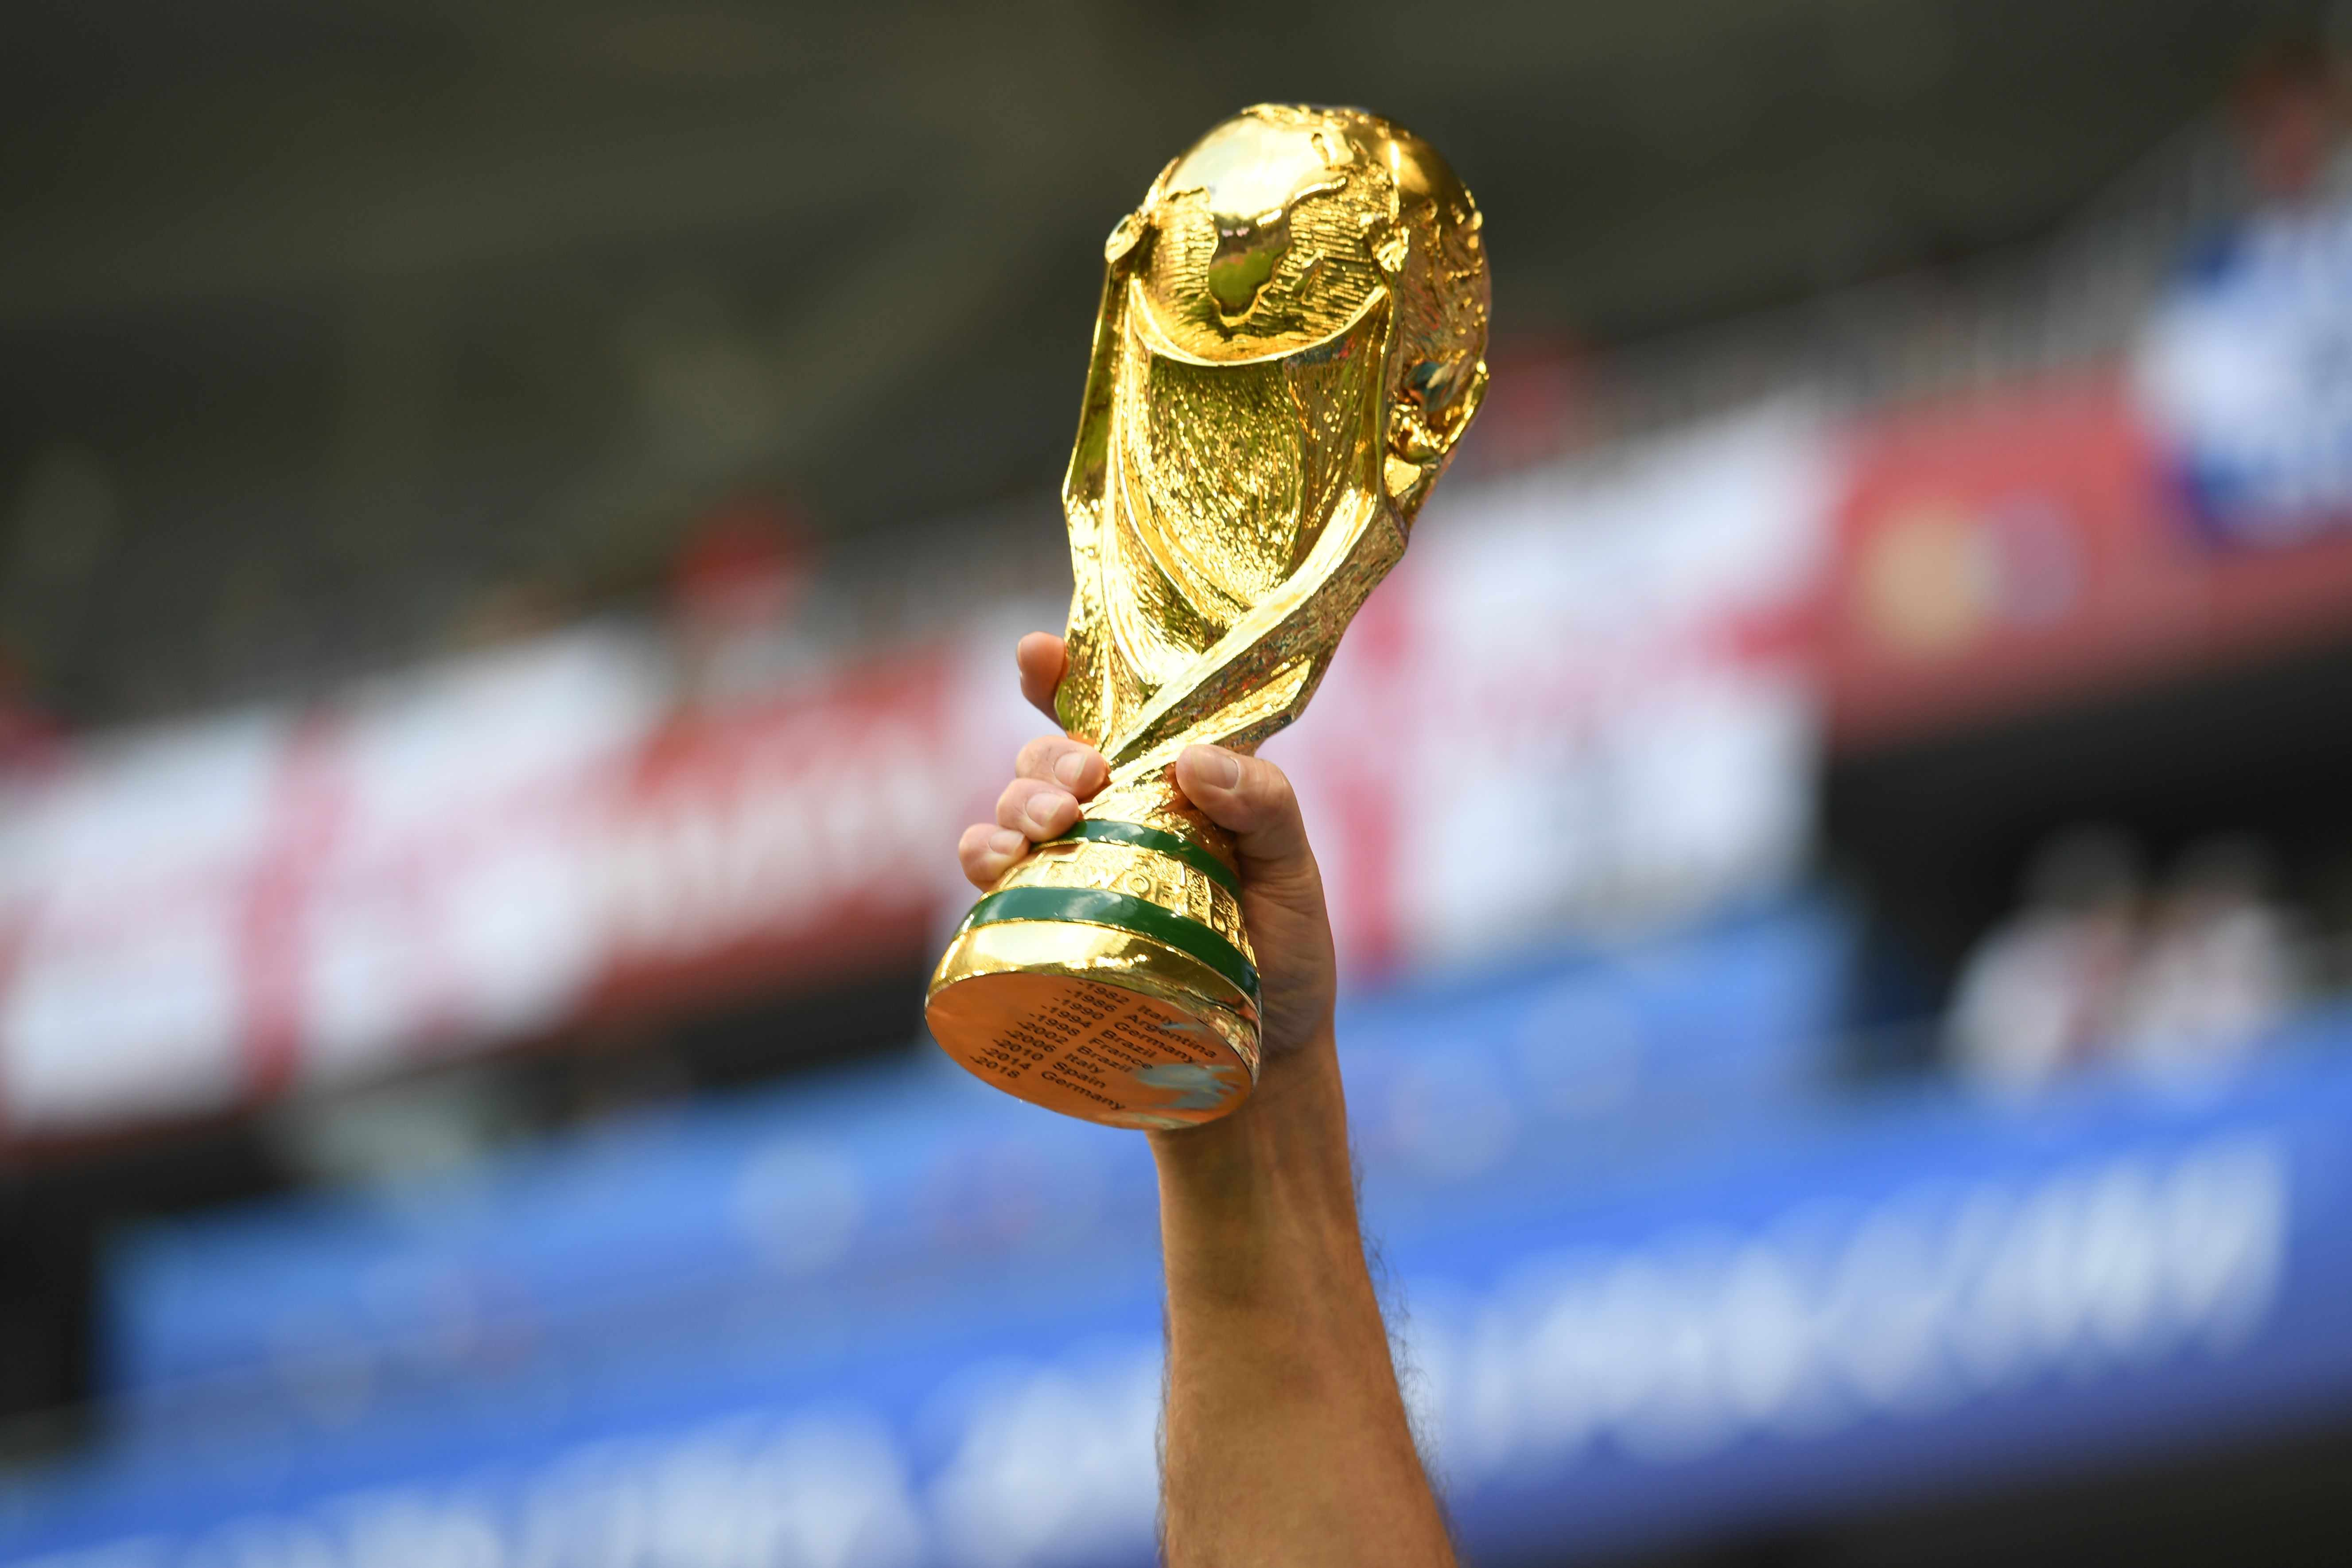 An England fan rises a replica of the World Cup trophy before the Russia 2018 World Cup quarter-final football match between Sweden and England at the Samara Arena in Samara on July 7, 2018. (Photo by YURI CORTEZ / AFP) / RESTRICTED TO EDITORIAL USE - NO MOBILE PUSH ALERTS/DOWNLOADS        (Photo credit should read YURI CORTEZ/AFP/Getty Images)  TL